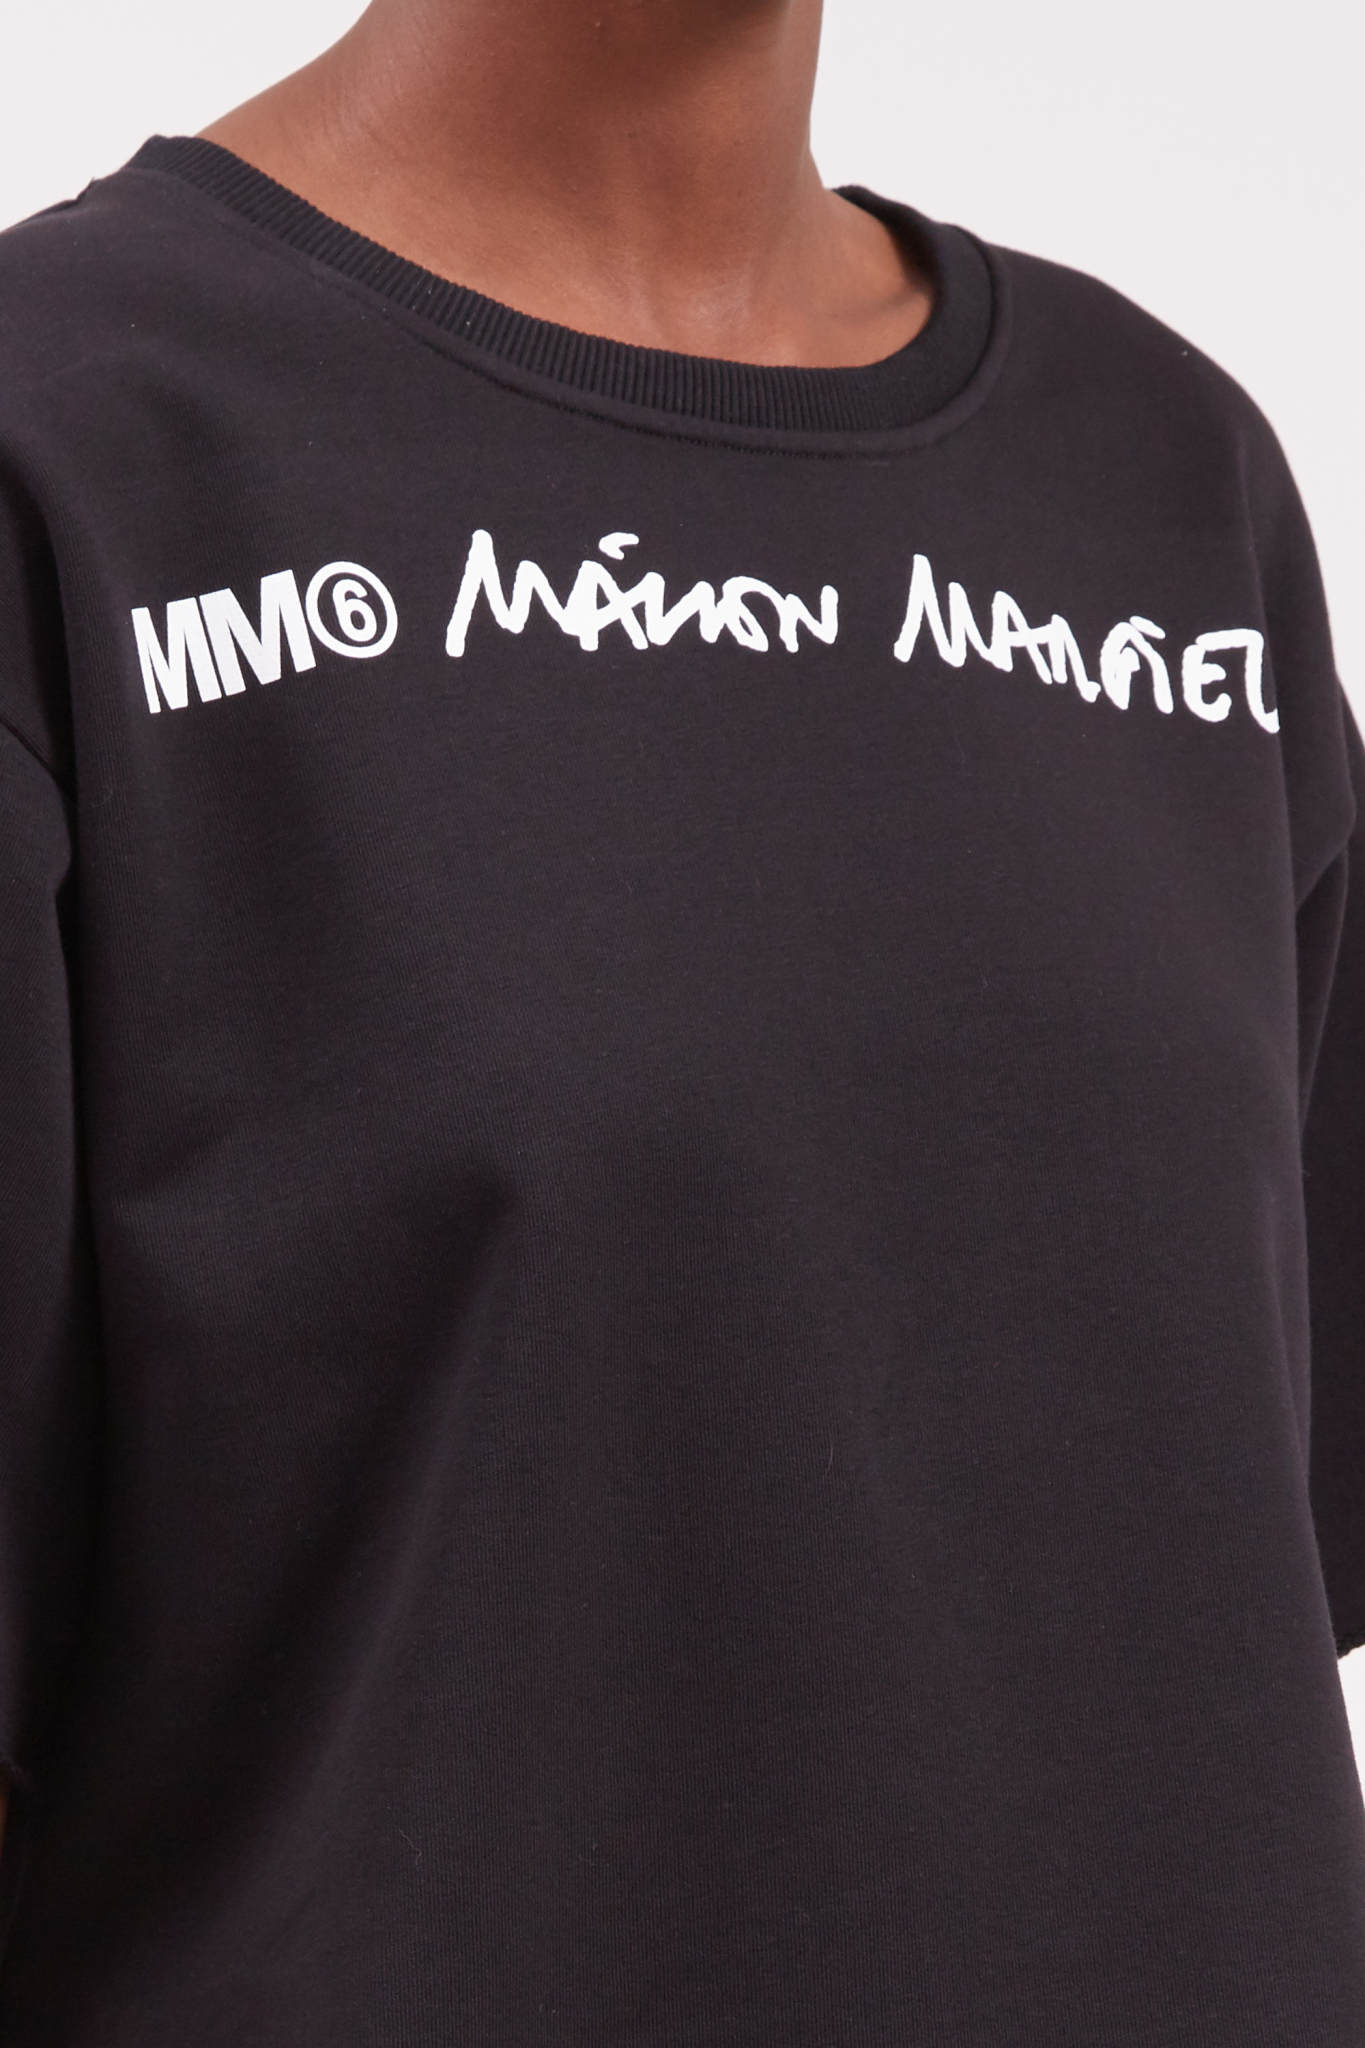 MM6 MAISON MARGIELA Cropped Logo Sweatshirt in Black